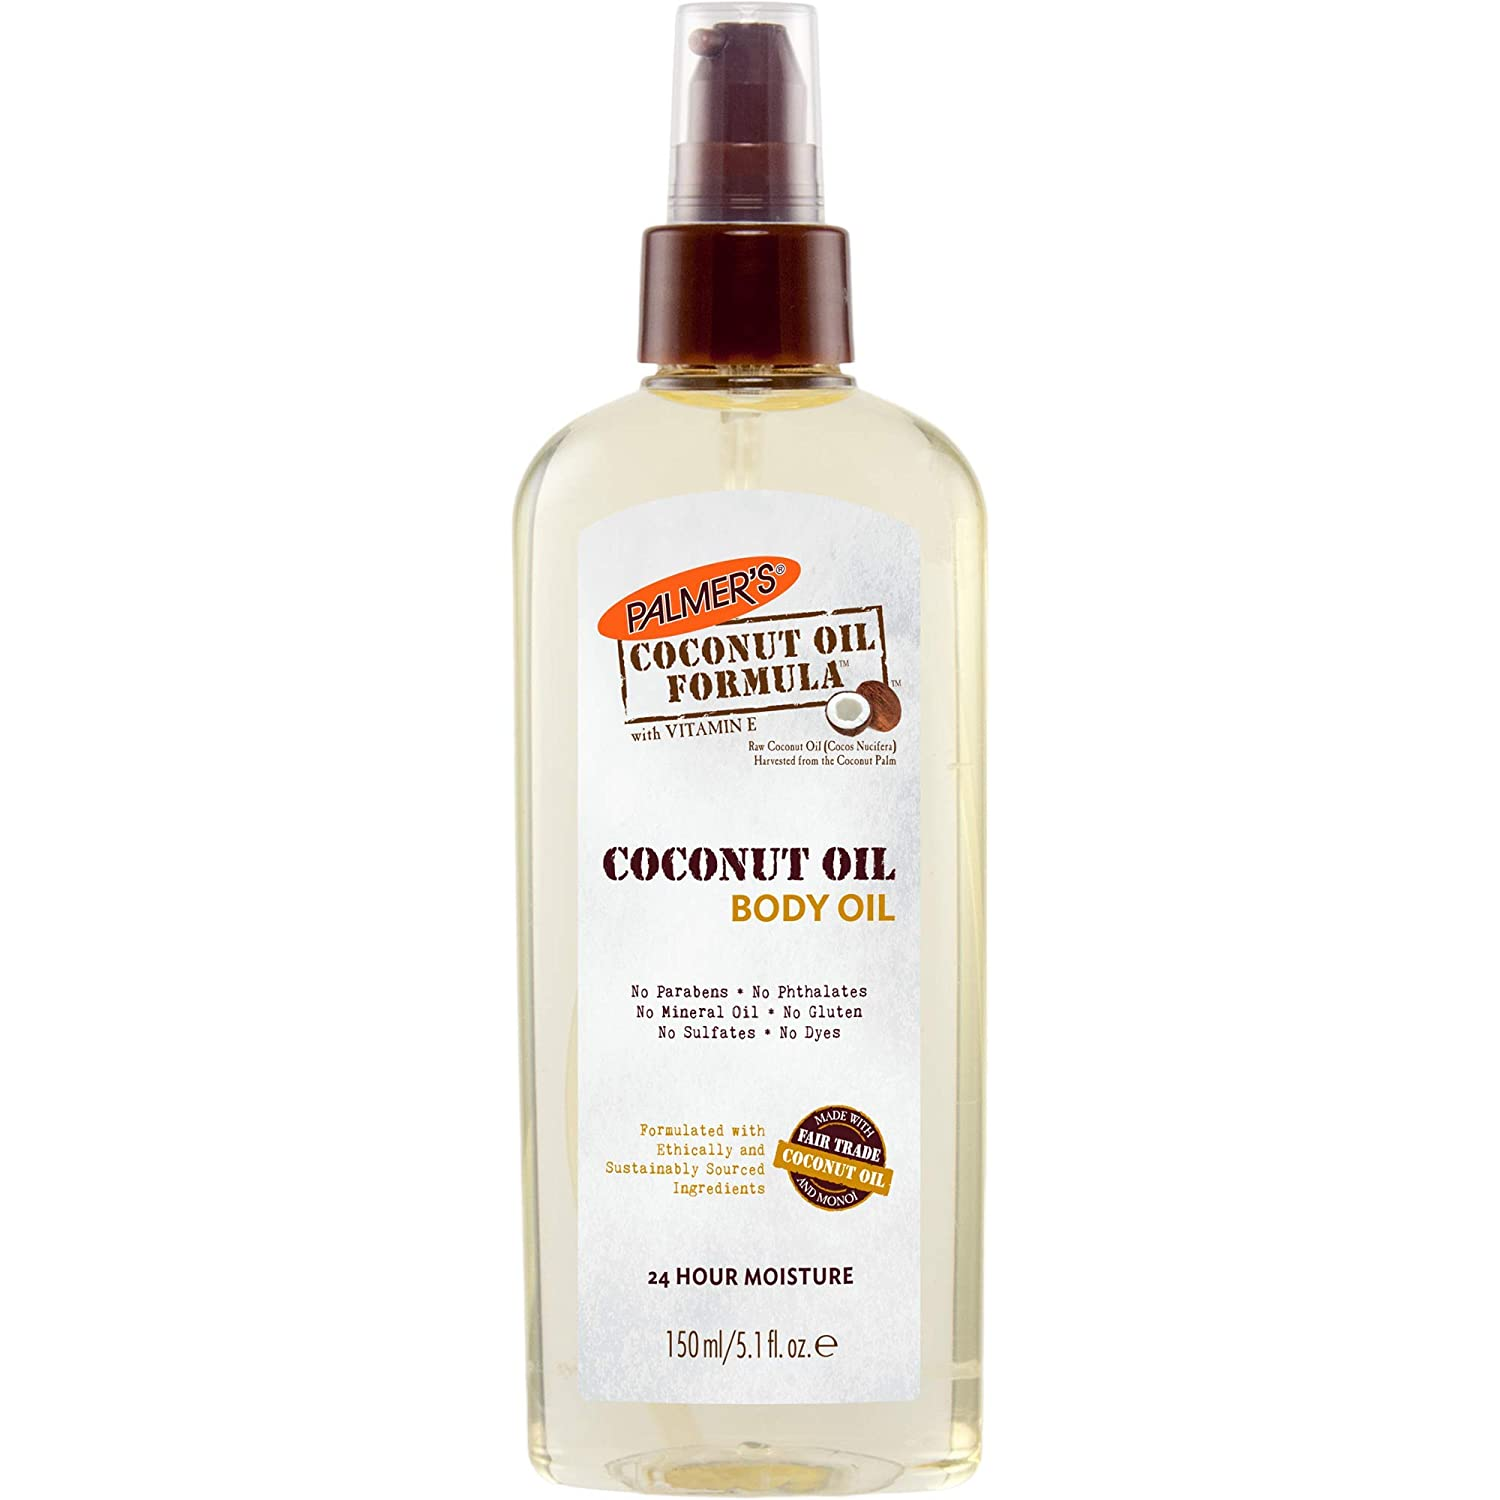 Palmer's Coconut Oil Formula Body Oil | 5.1 Ounce